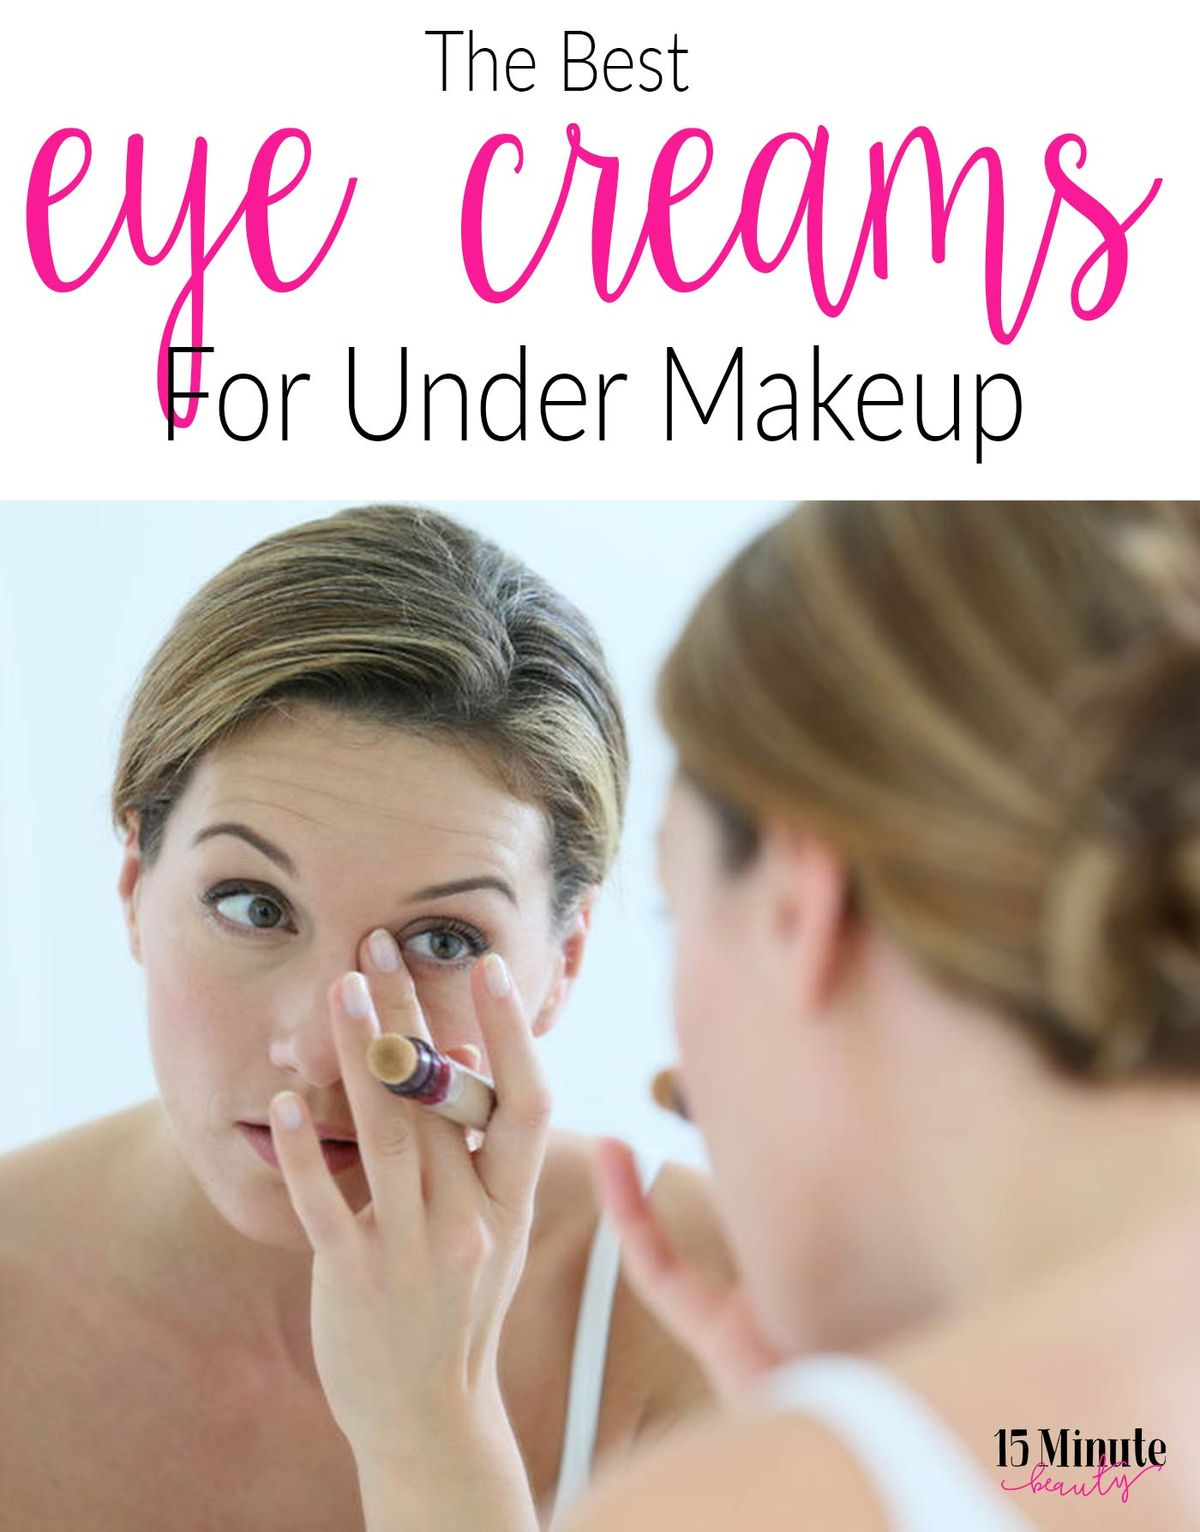 Using a good eye cream is key to prevent aging, but what one do you use under your concealer each day? Here are my favorite eye creams to prep for makeup.